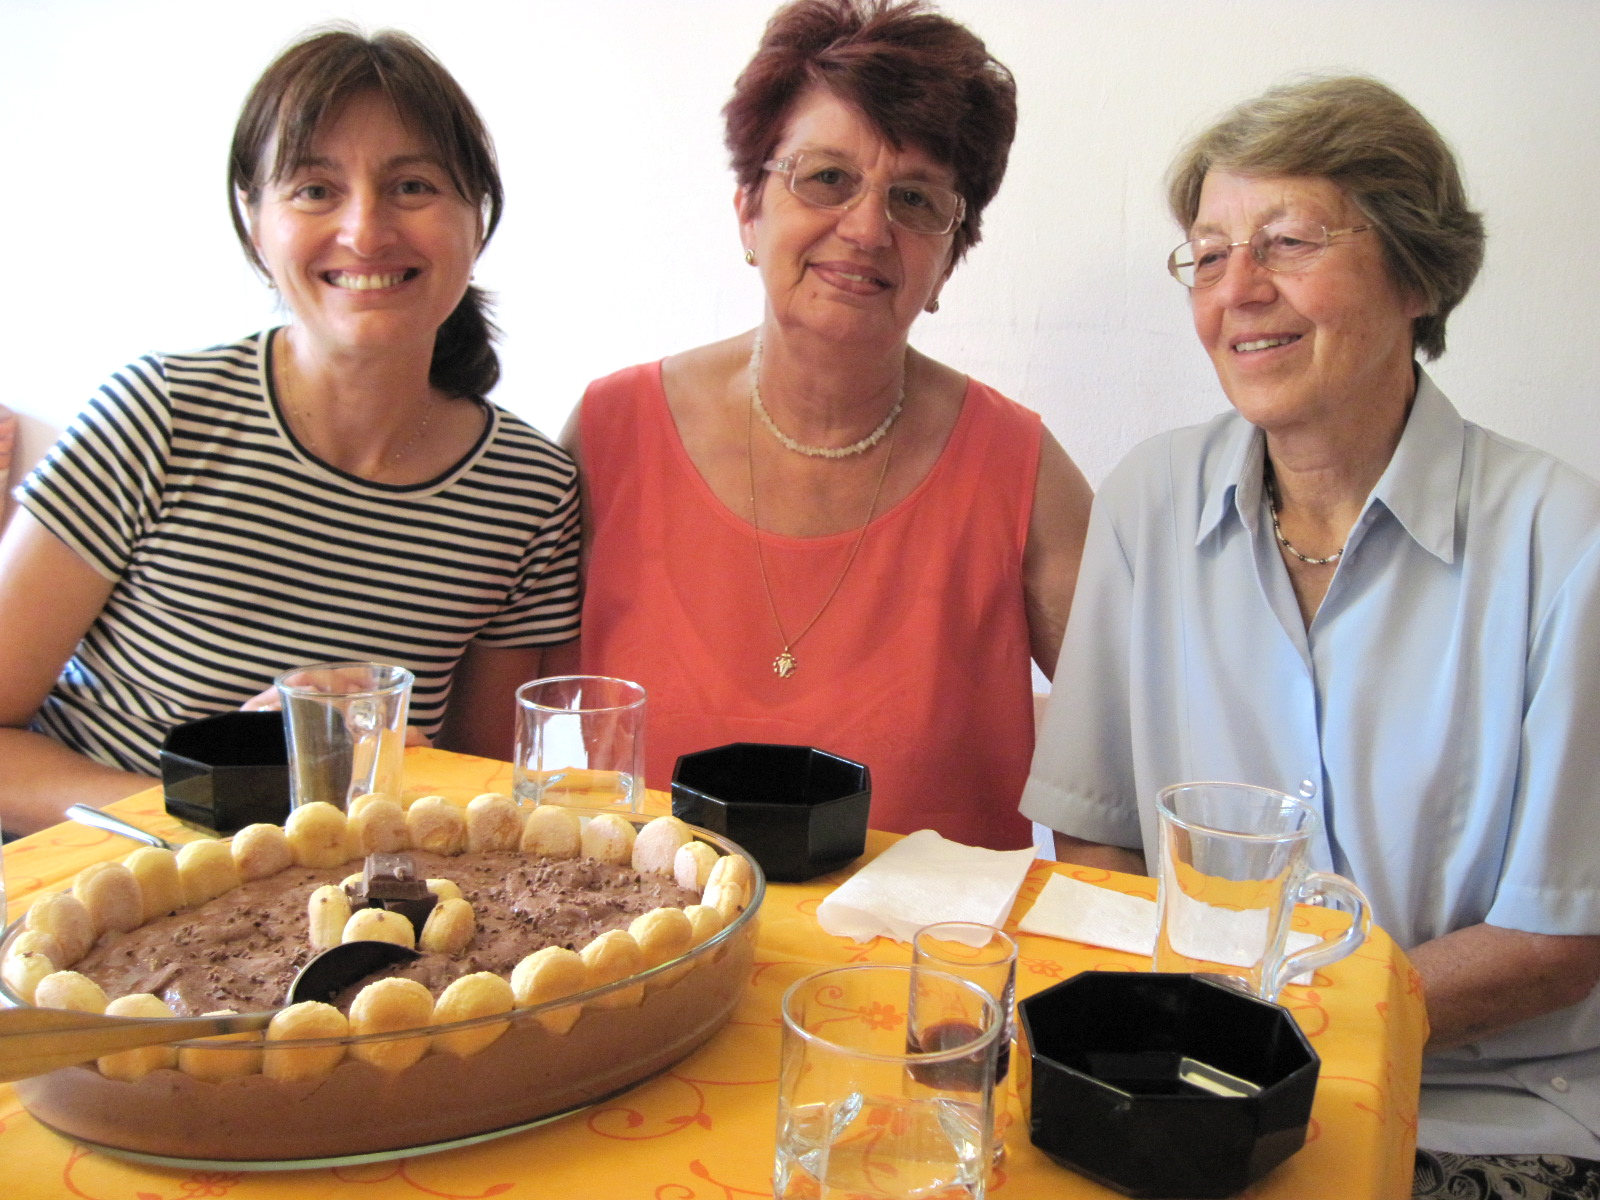 For dessert, Romanian Chocolate Trifle with Reka, her mom & Dr. Greta looking on in anticipation!